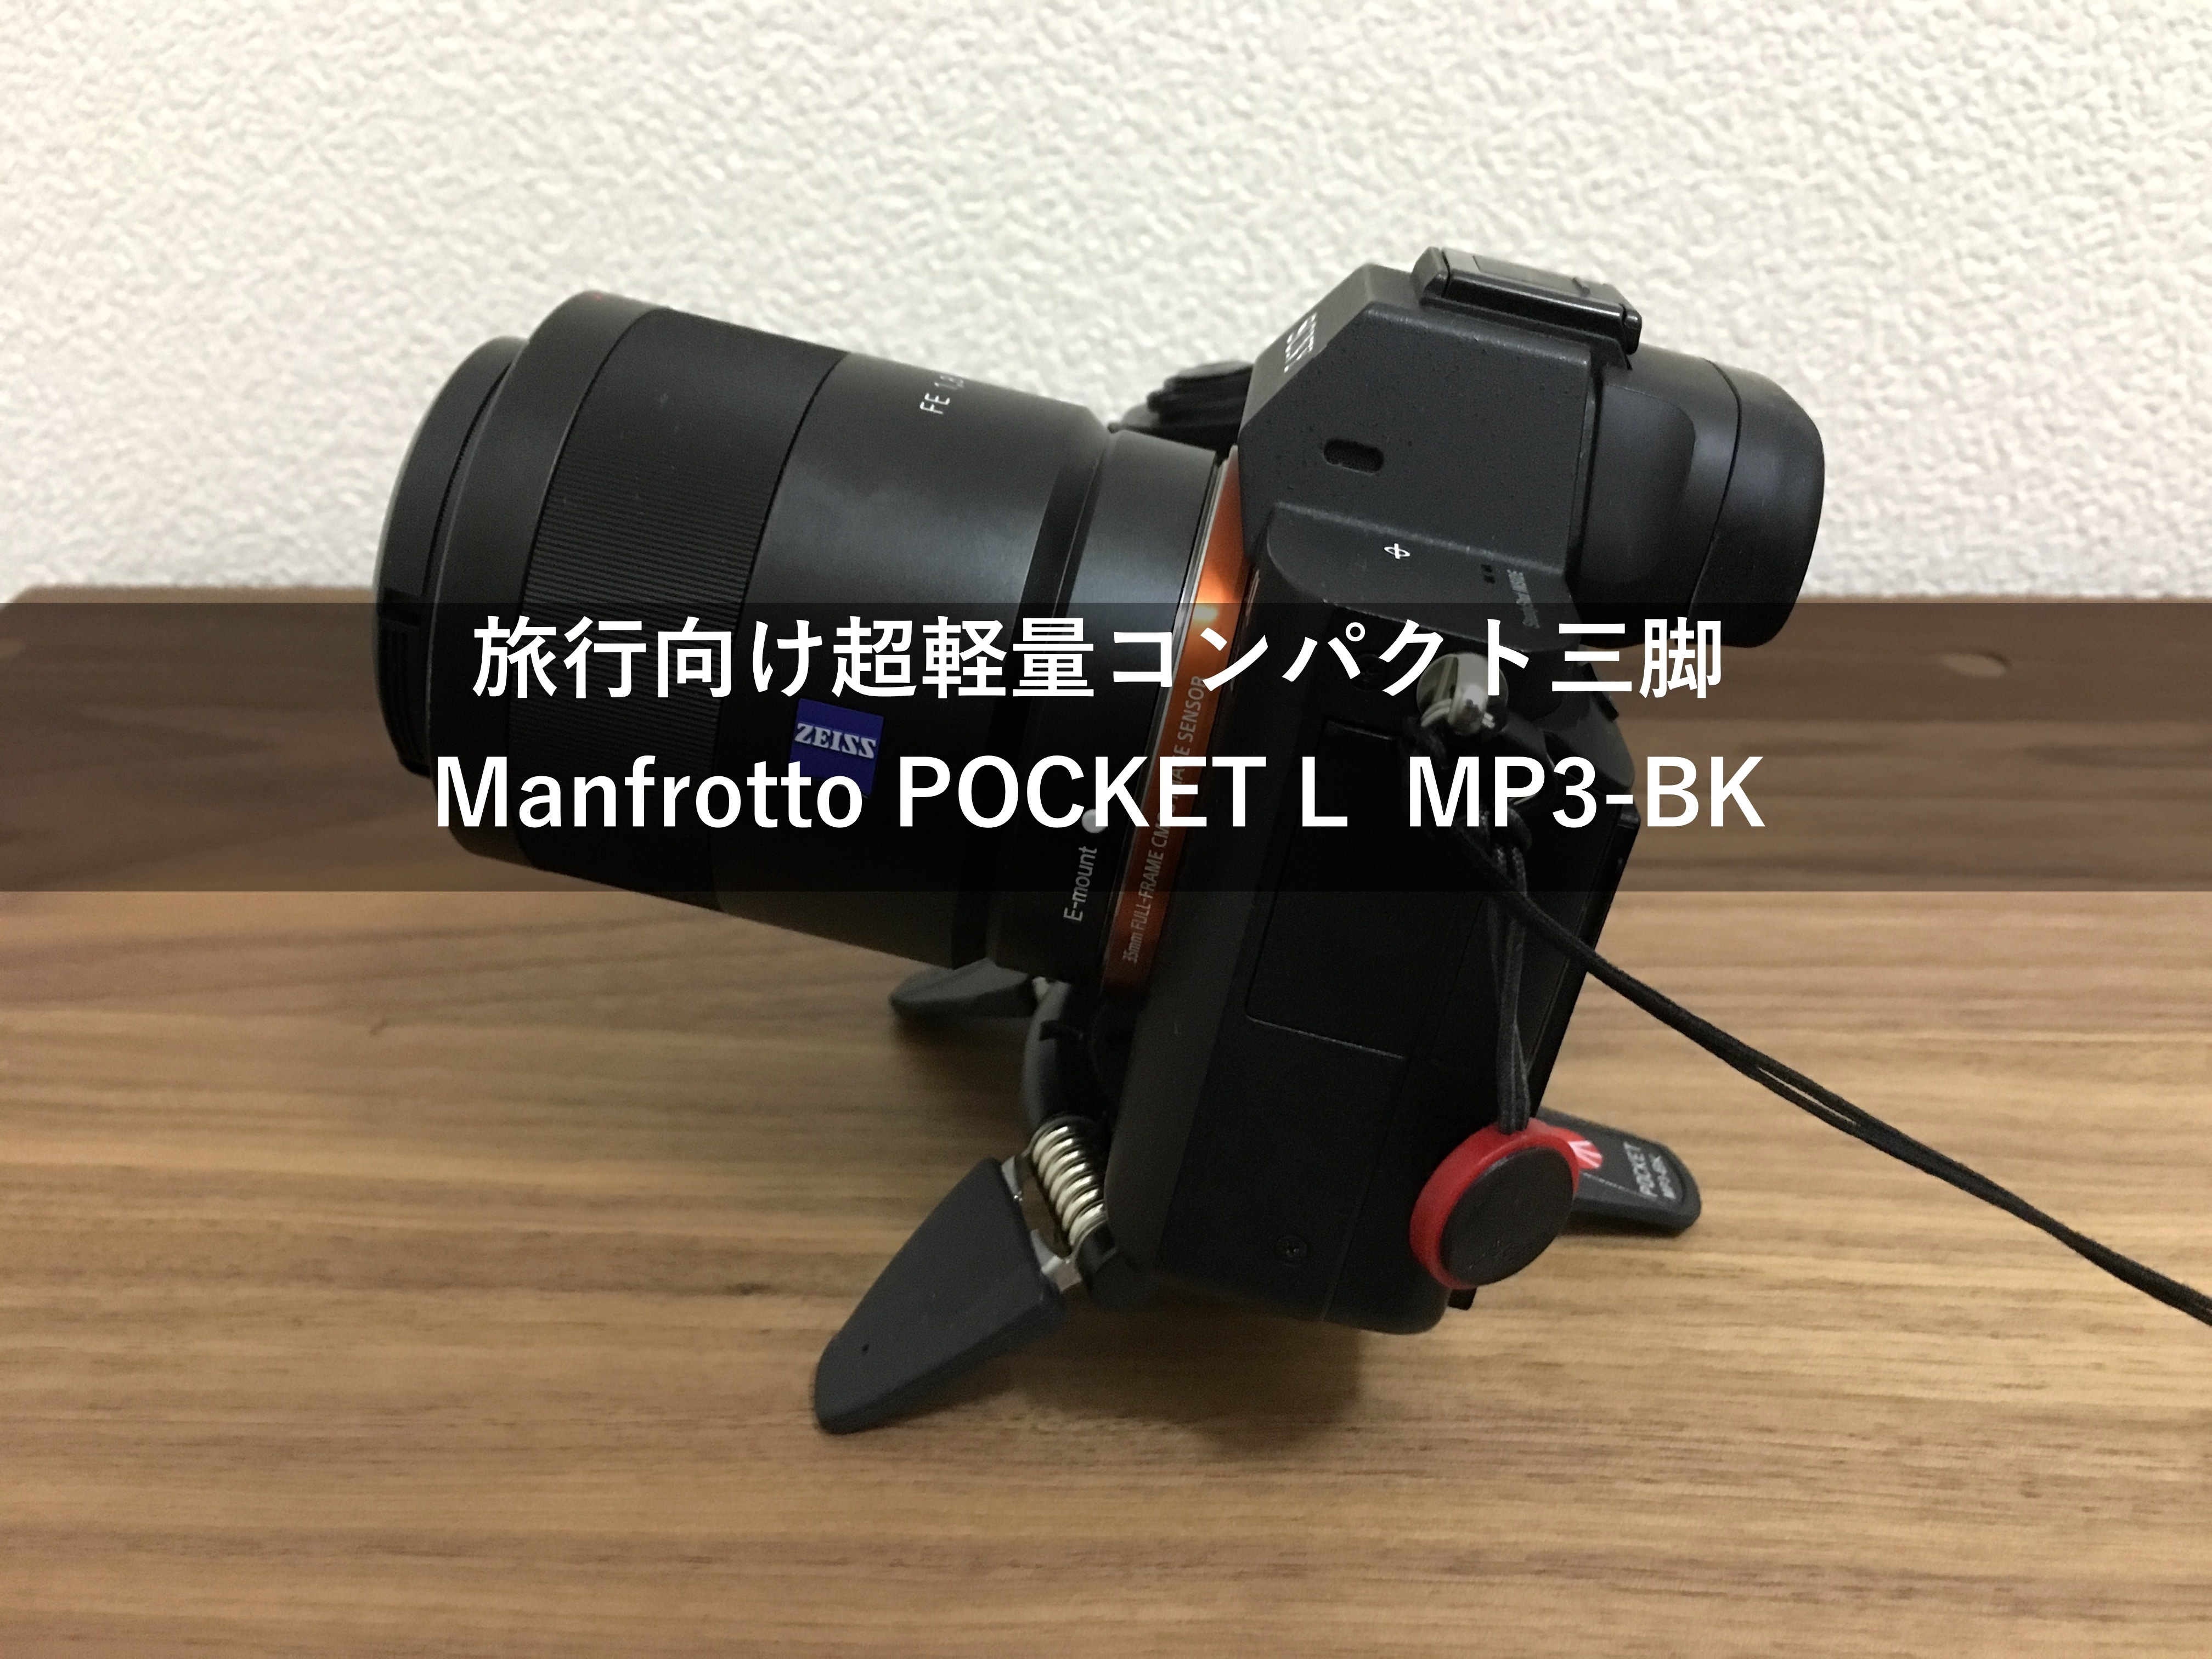 Manfrotto MP1//GY Pocket Table Tripod Size S Grey